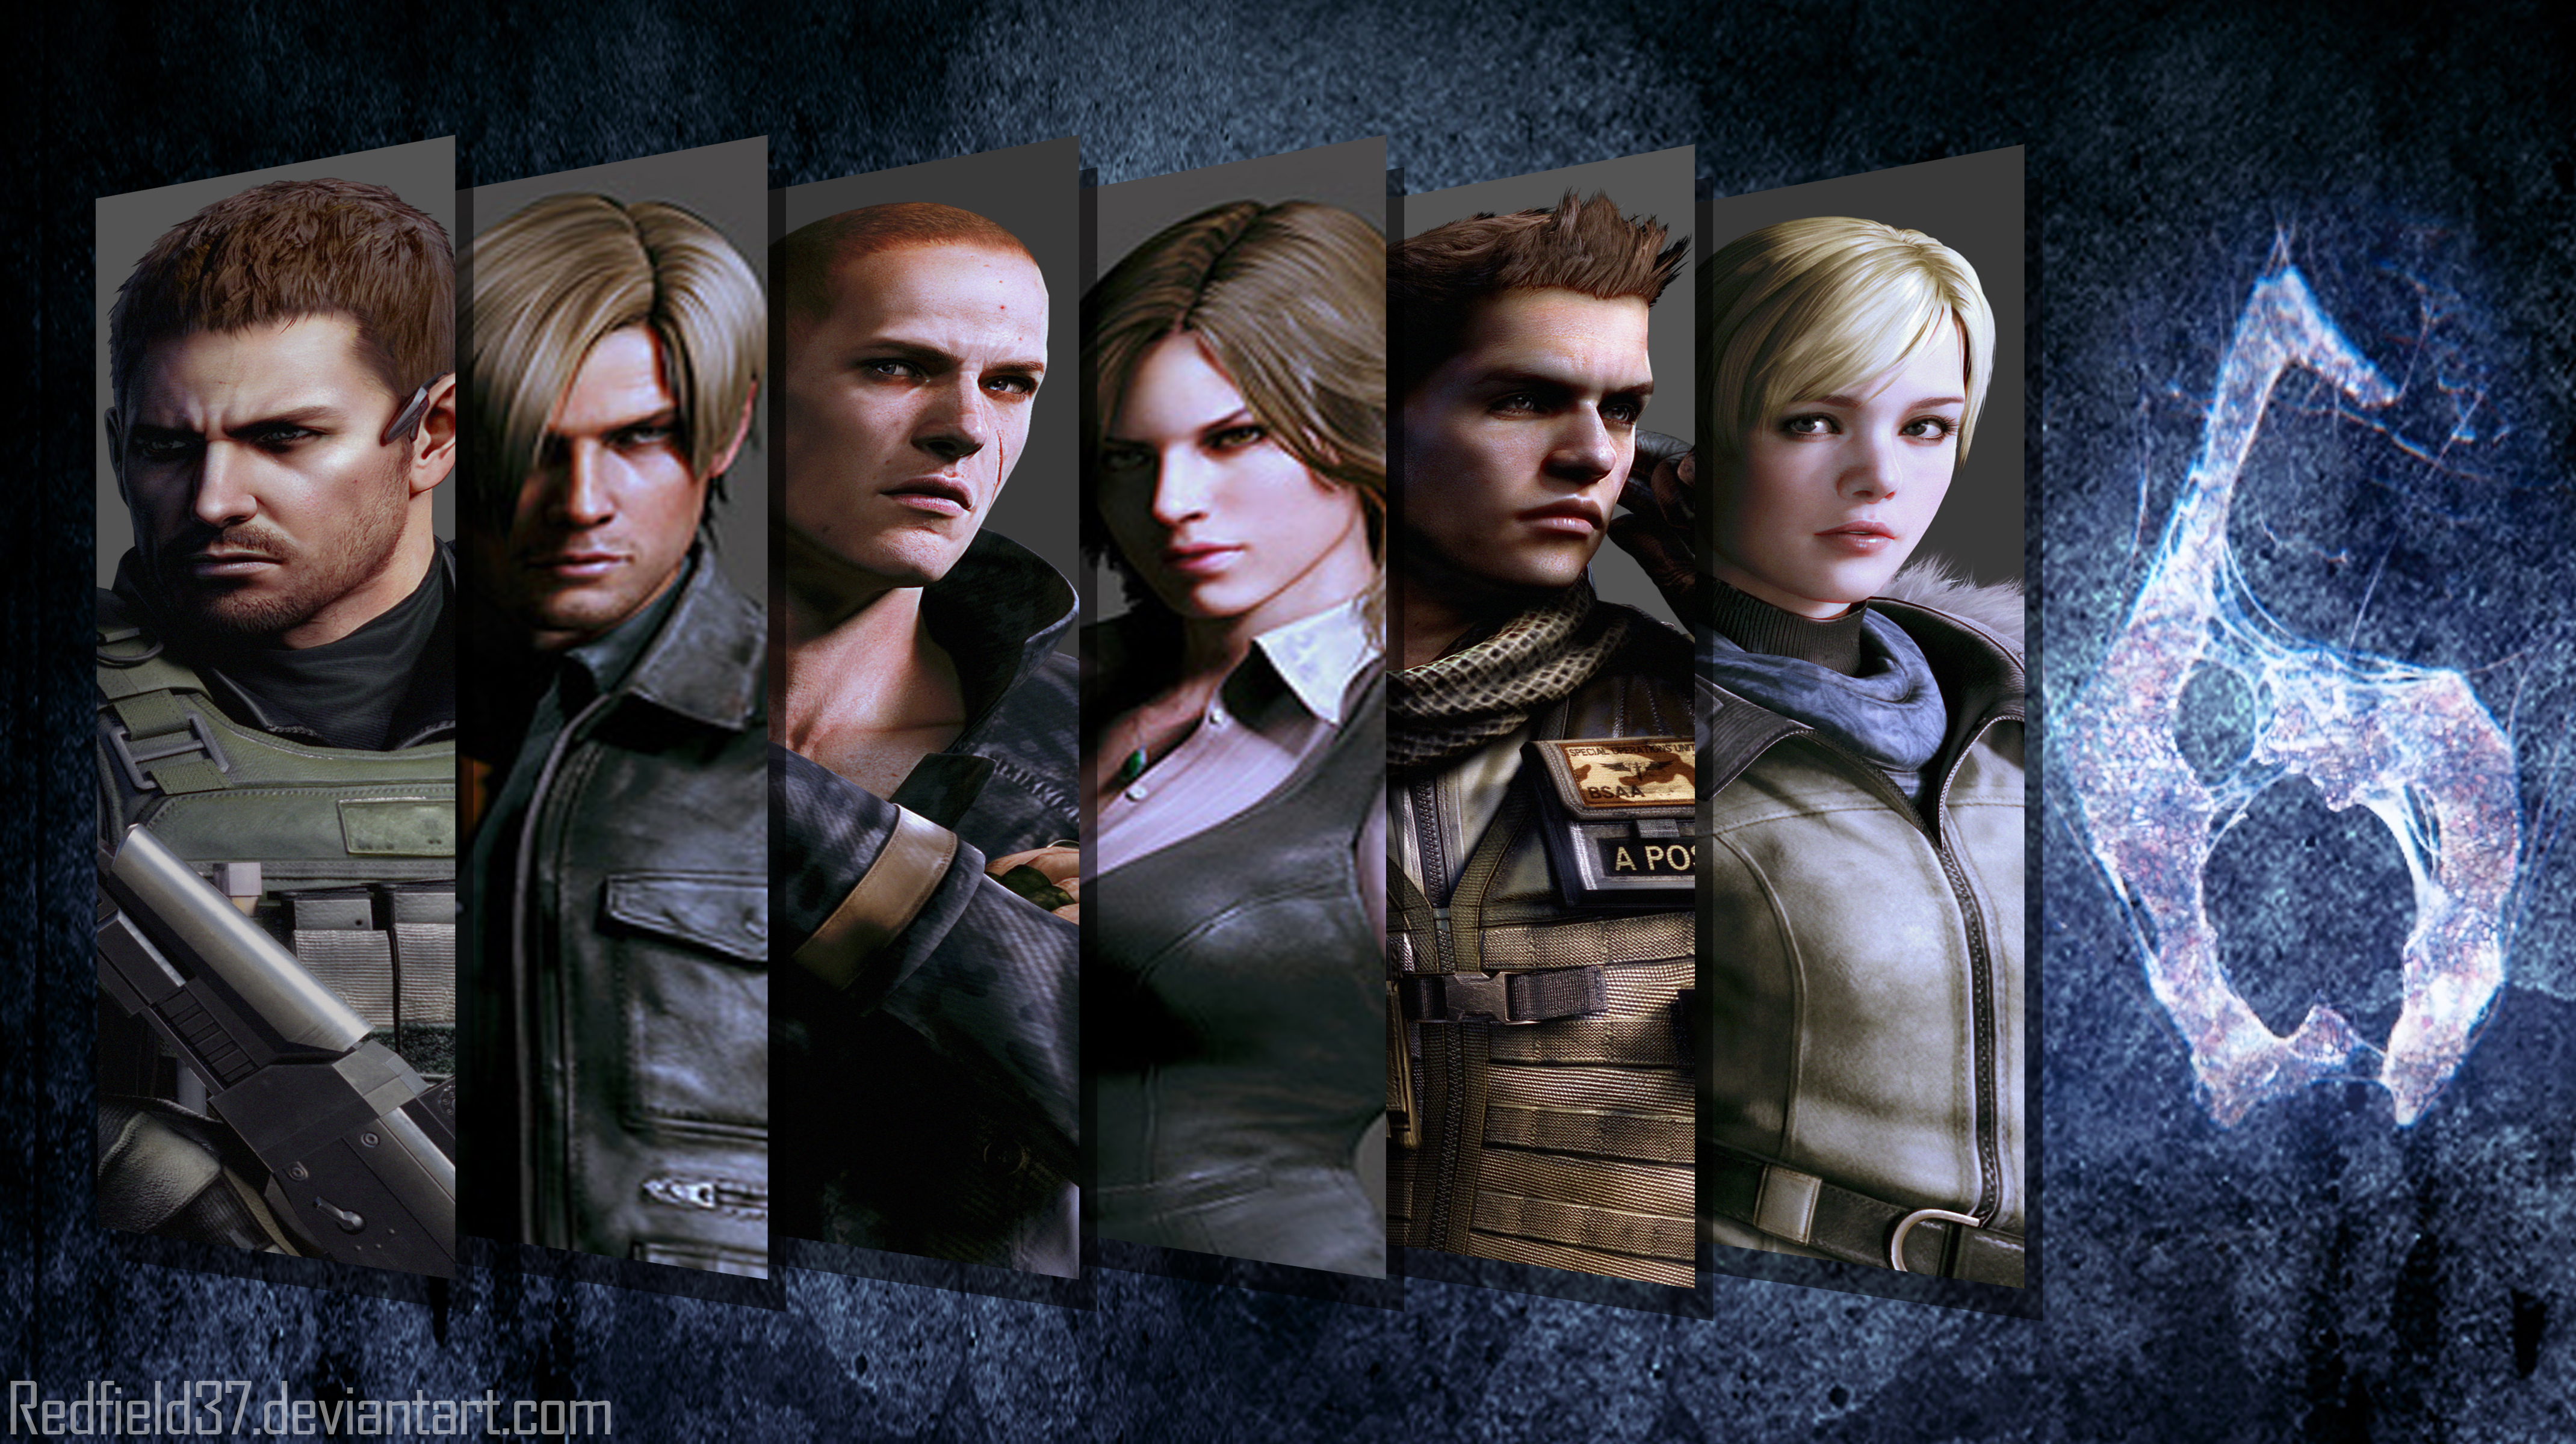 Backup Original  Resident_evil_6_wallpaper_by_redfield37-d4vtqjk